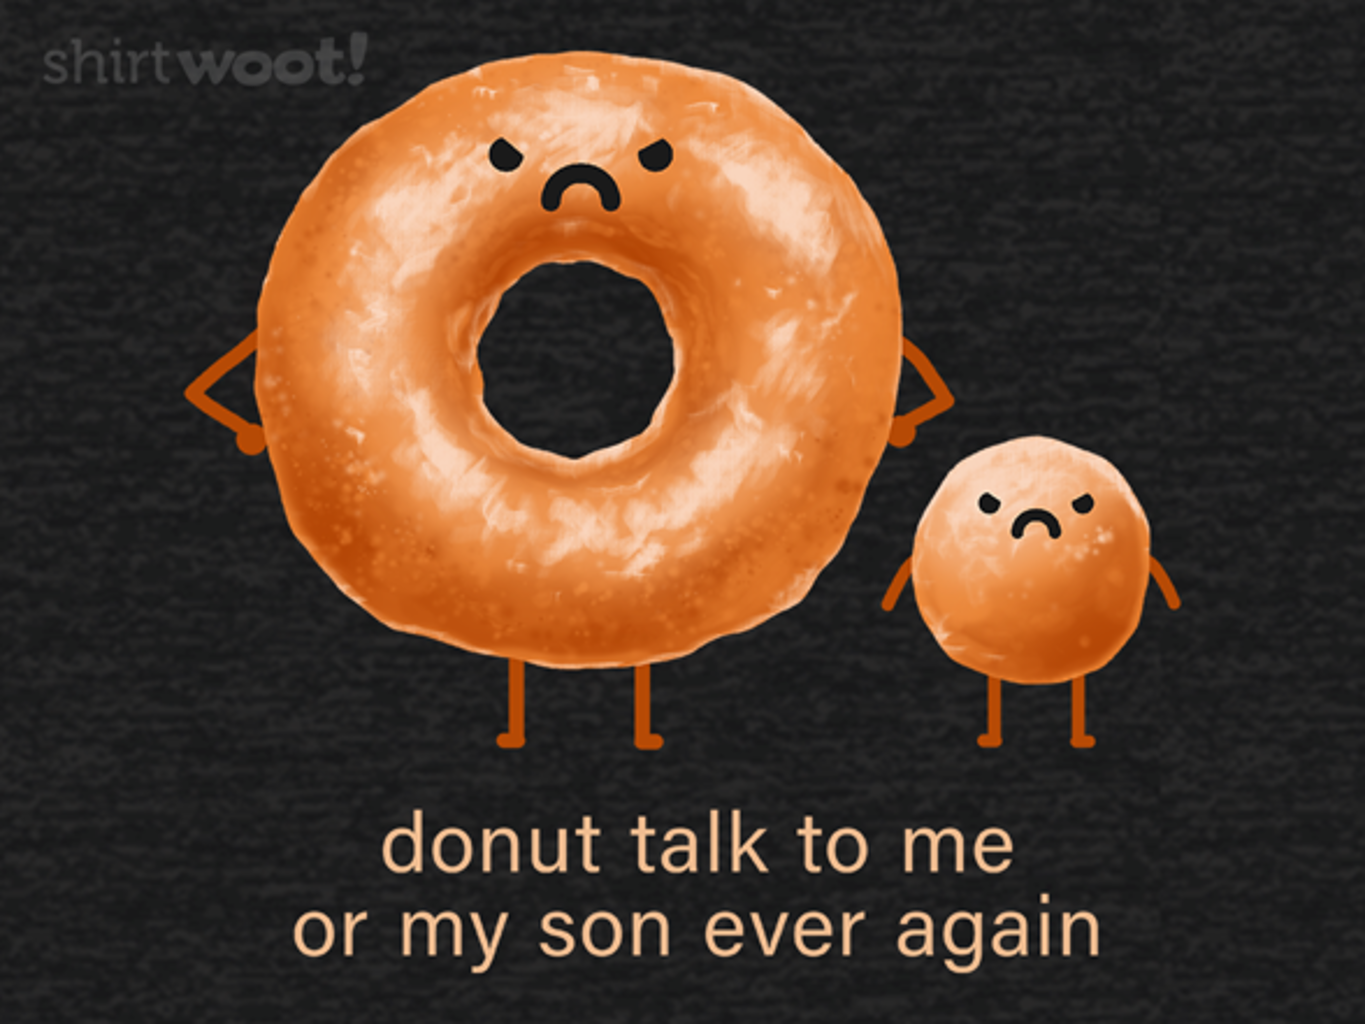 Woot!: Donut Talk to Me or My Son Ever Again